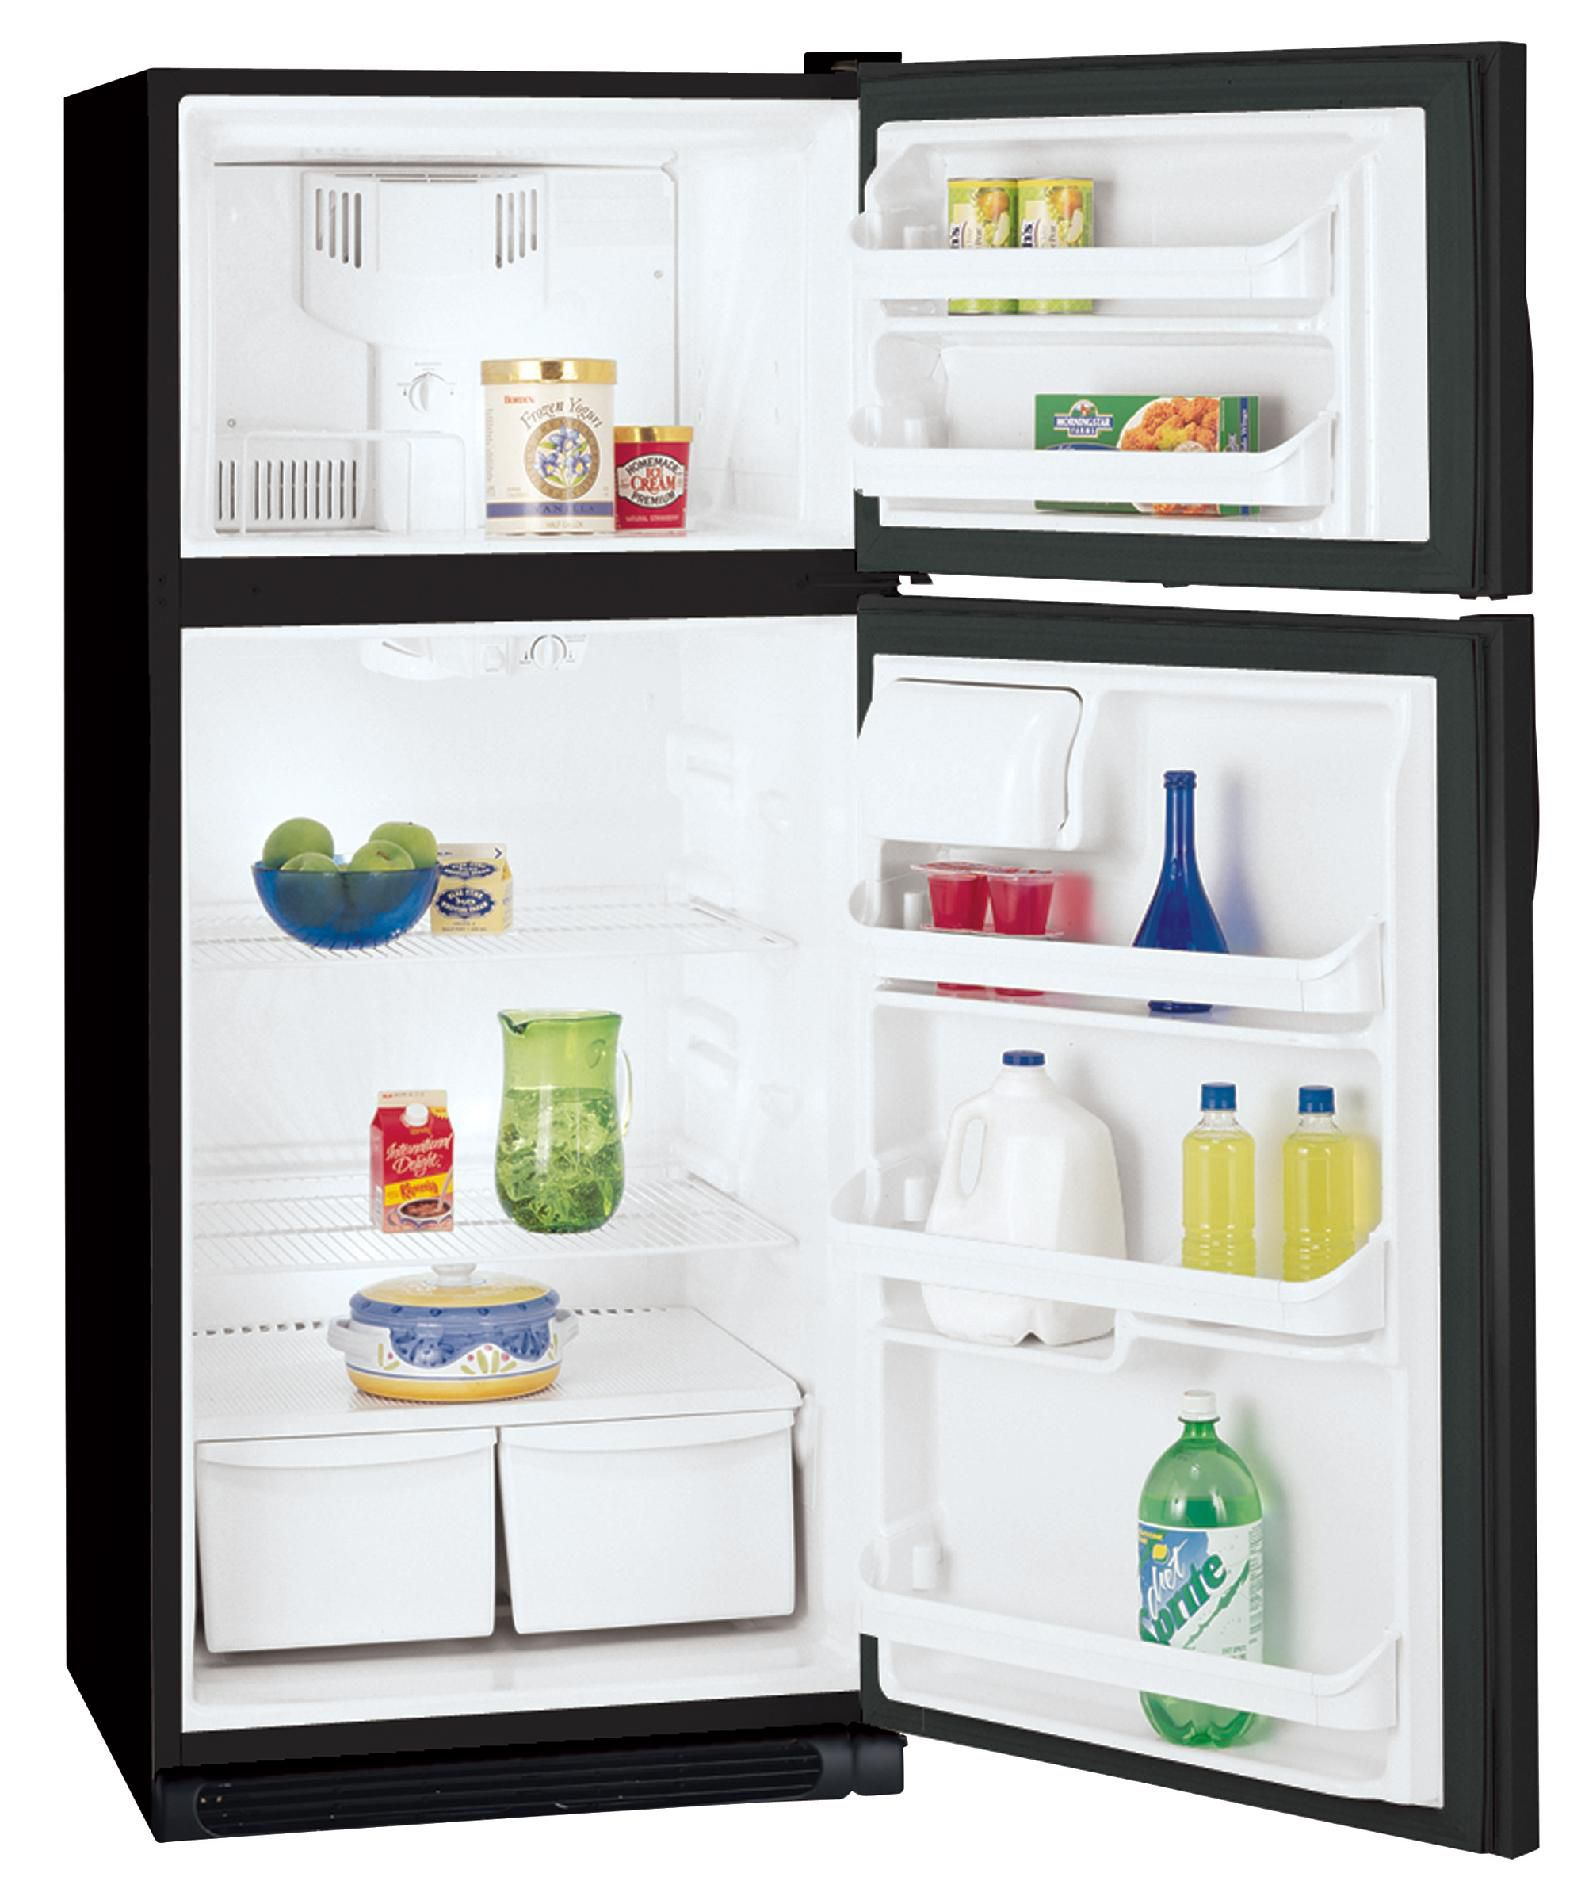 Kenmore 16.5 cu. ft. Top-Freezer Refrigerator, Non-Ice - Black